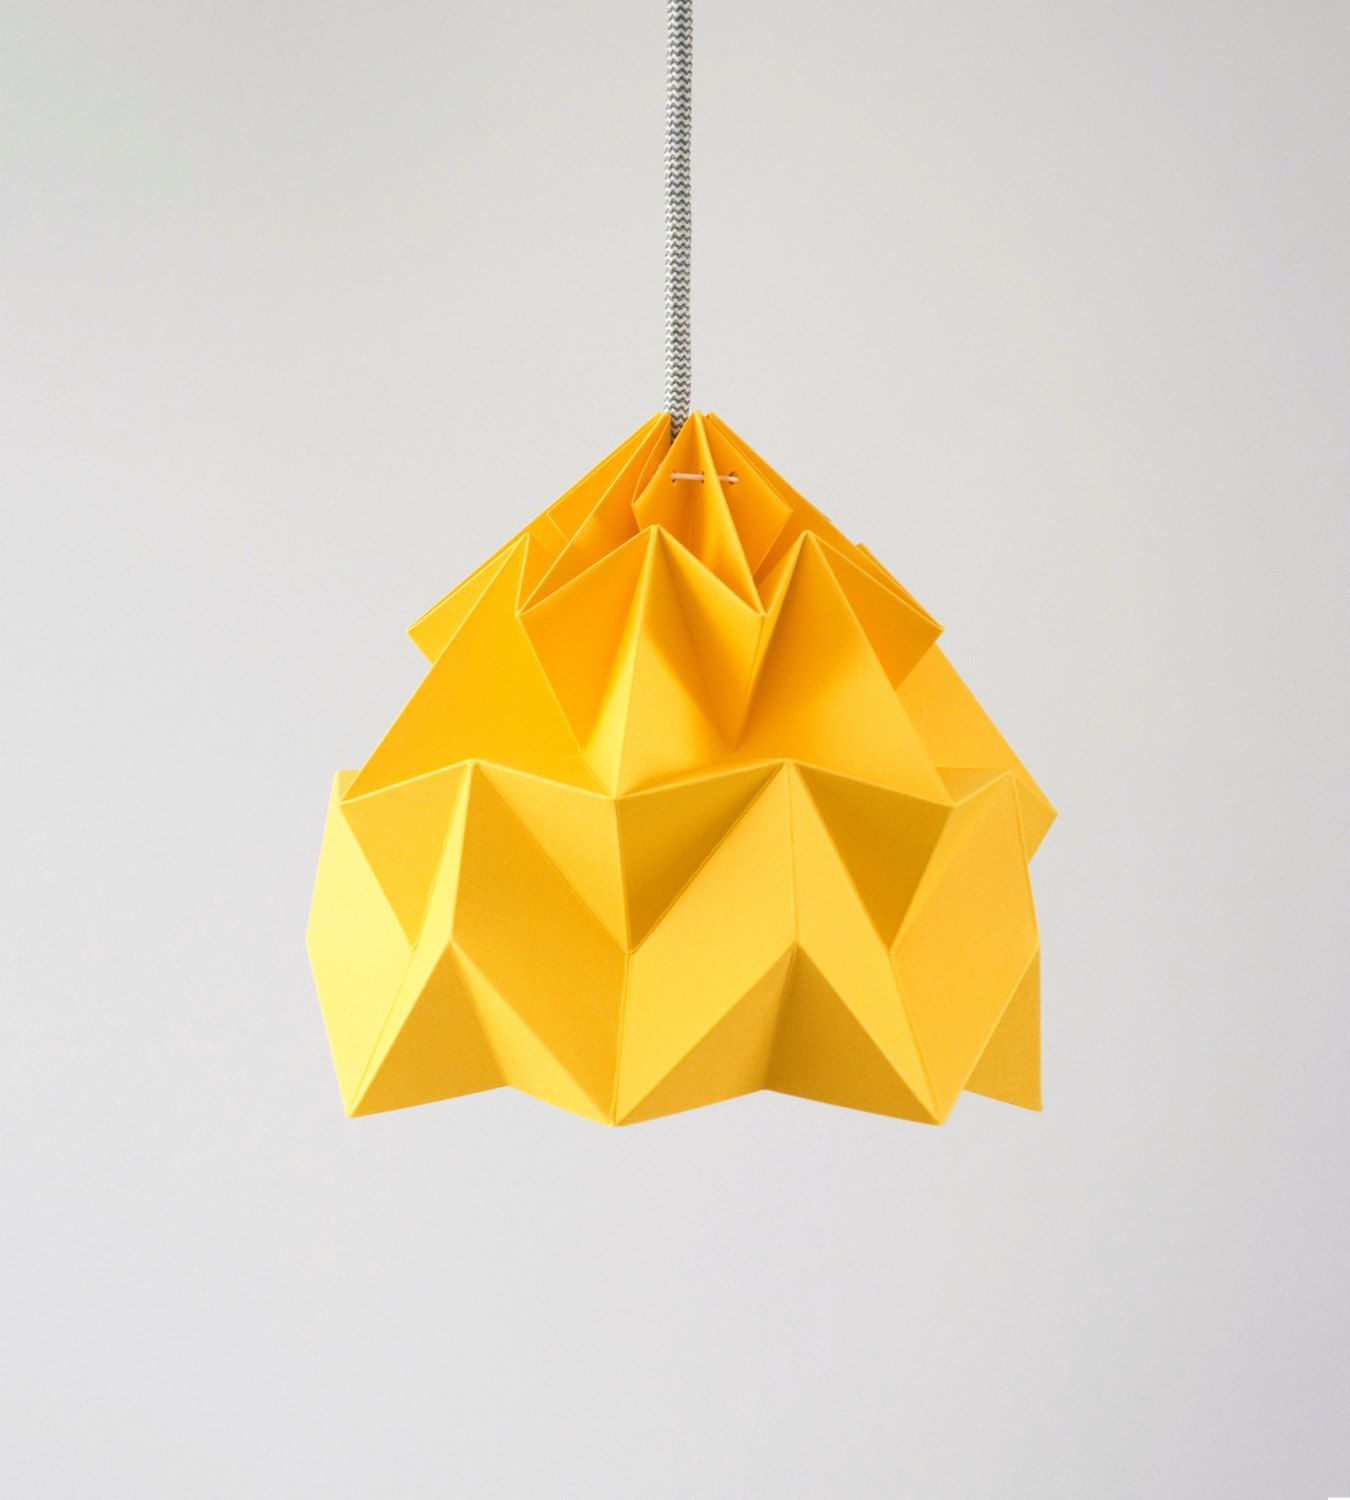 Moth origami lampshade gold yellow 5900 via etsy jadore moth origami lampshade gold yellow 5900 via etsy aloadofball Images